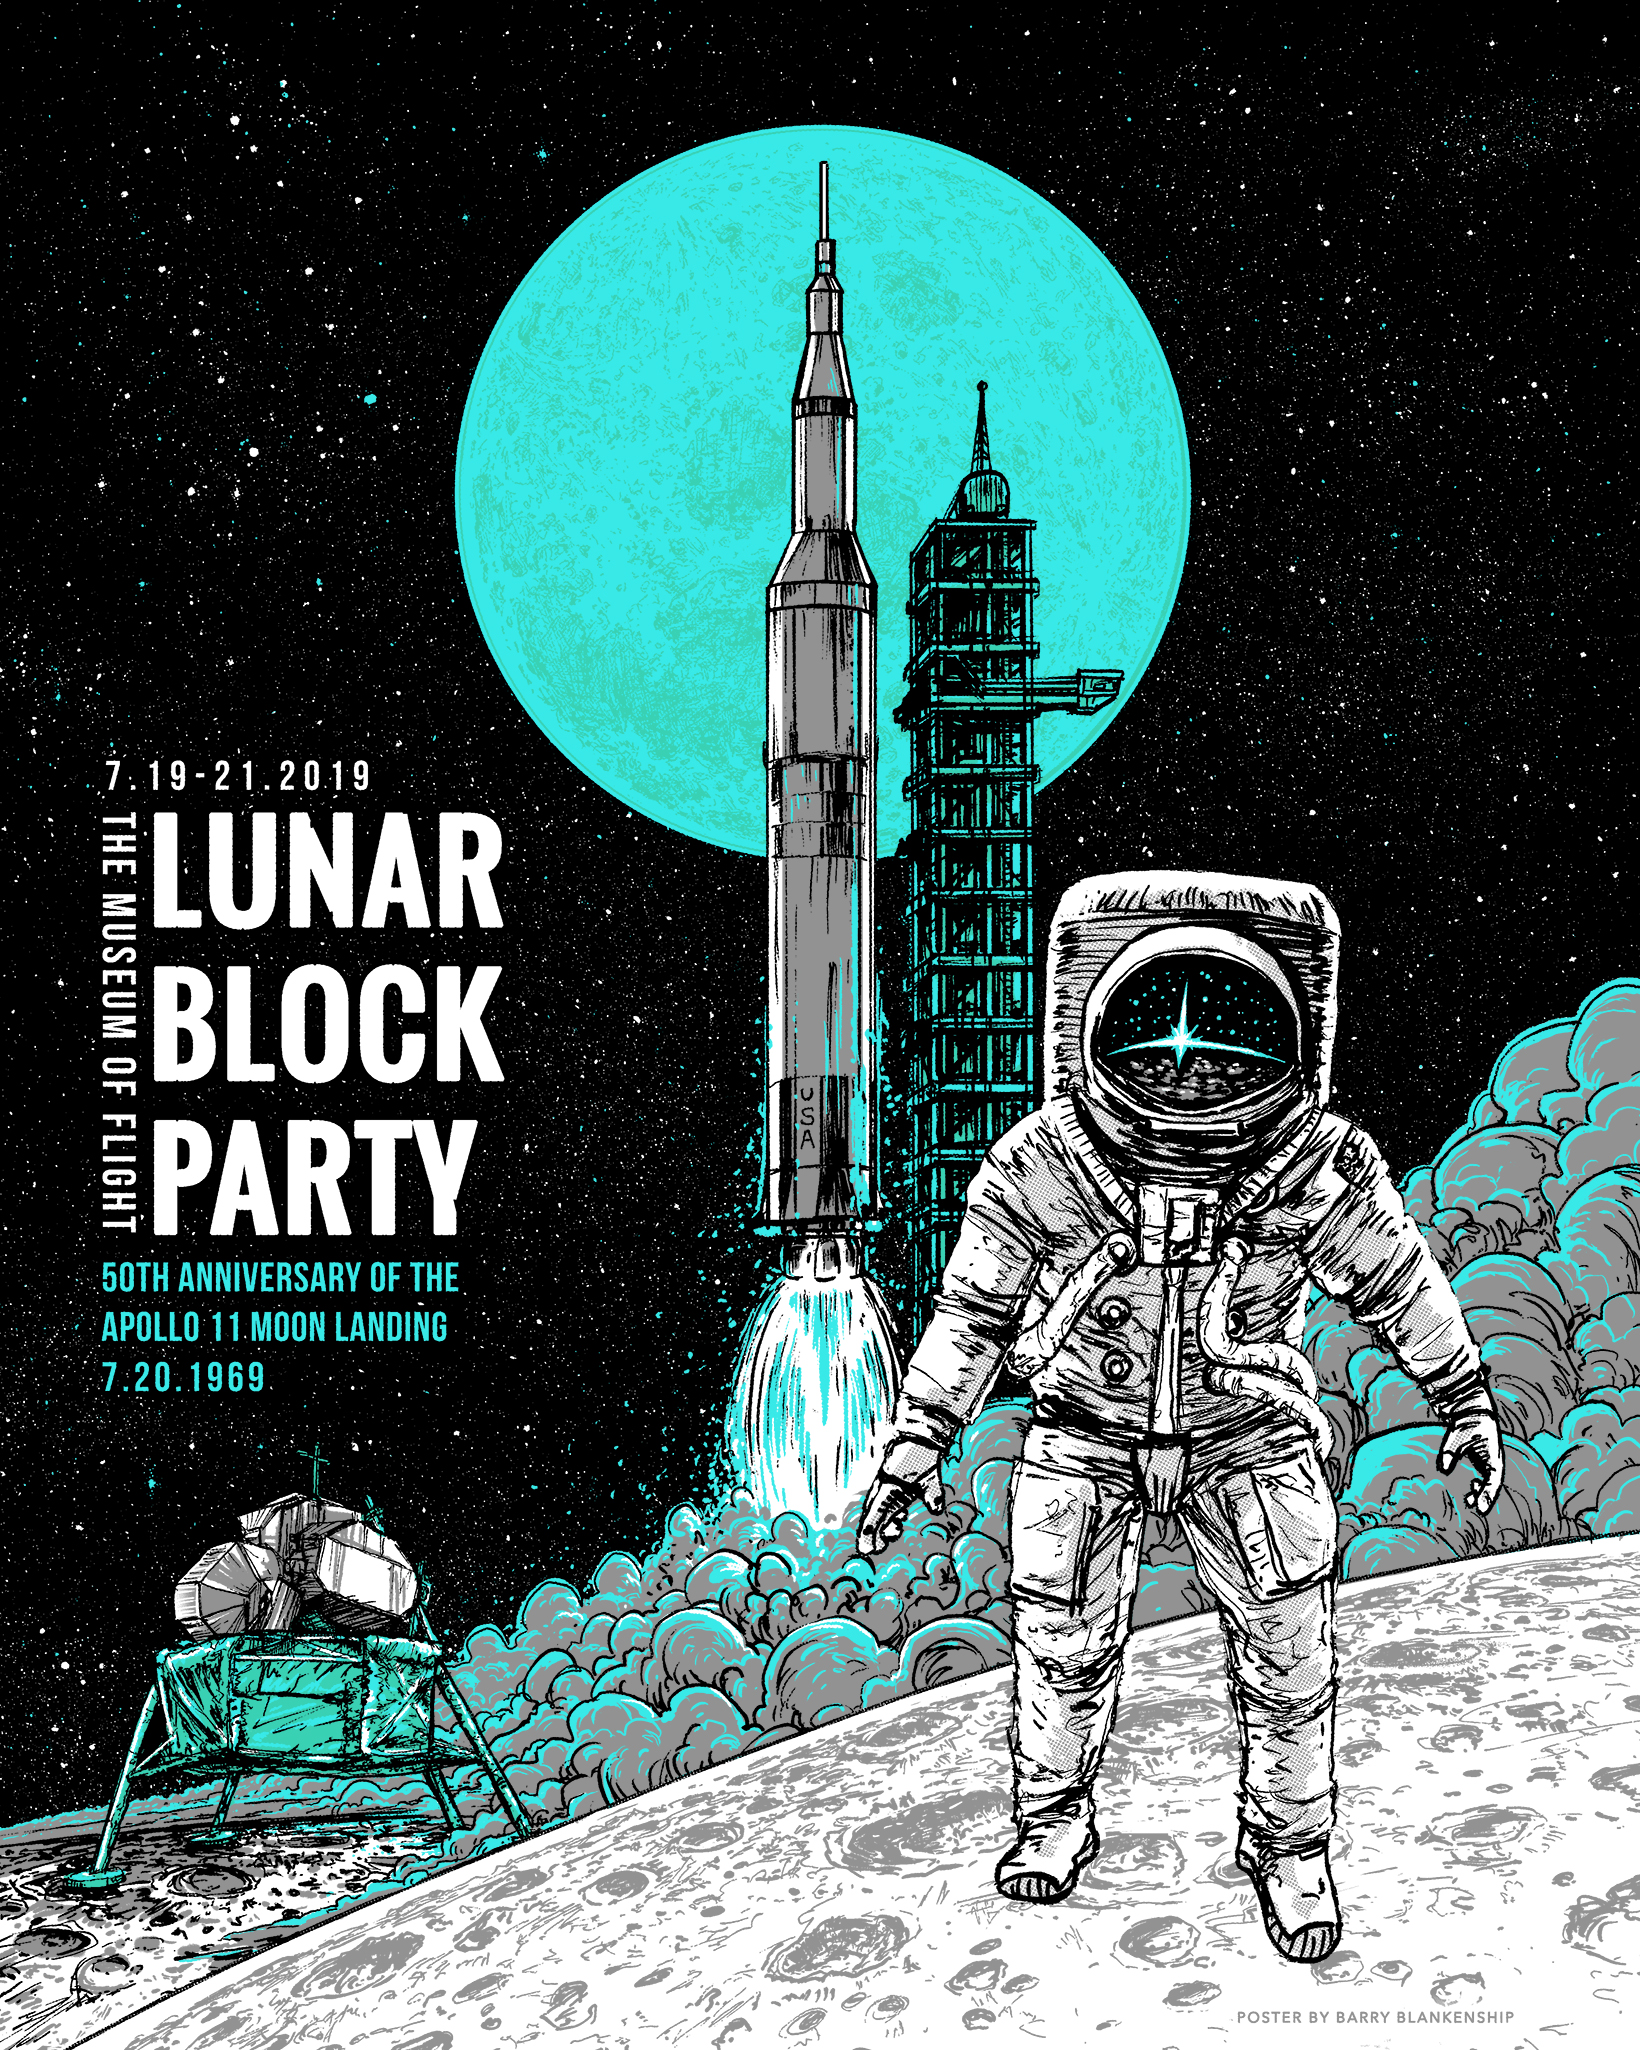 16x20_apollo11_lunarblockparty.jpg